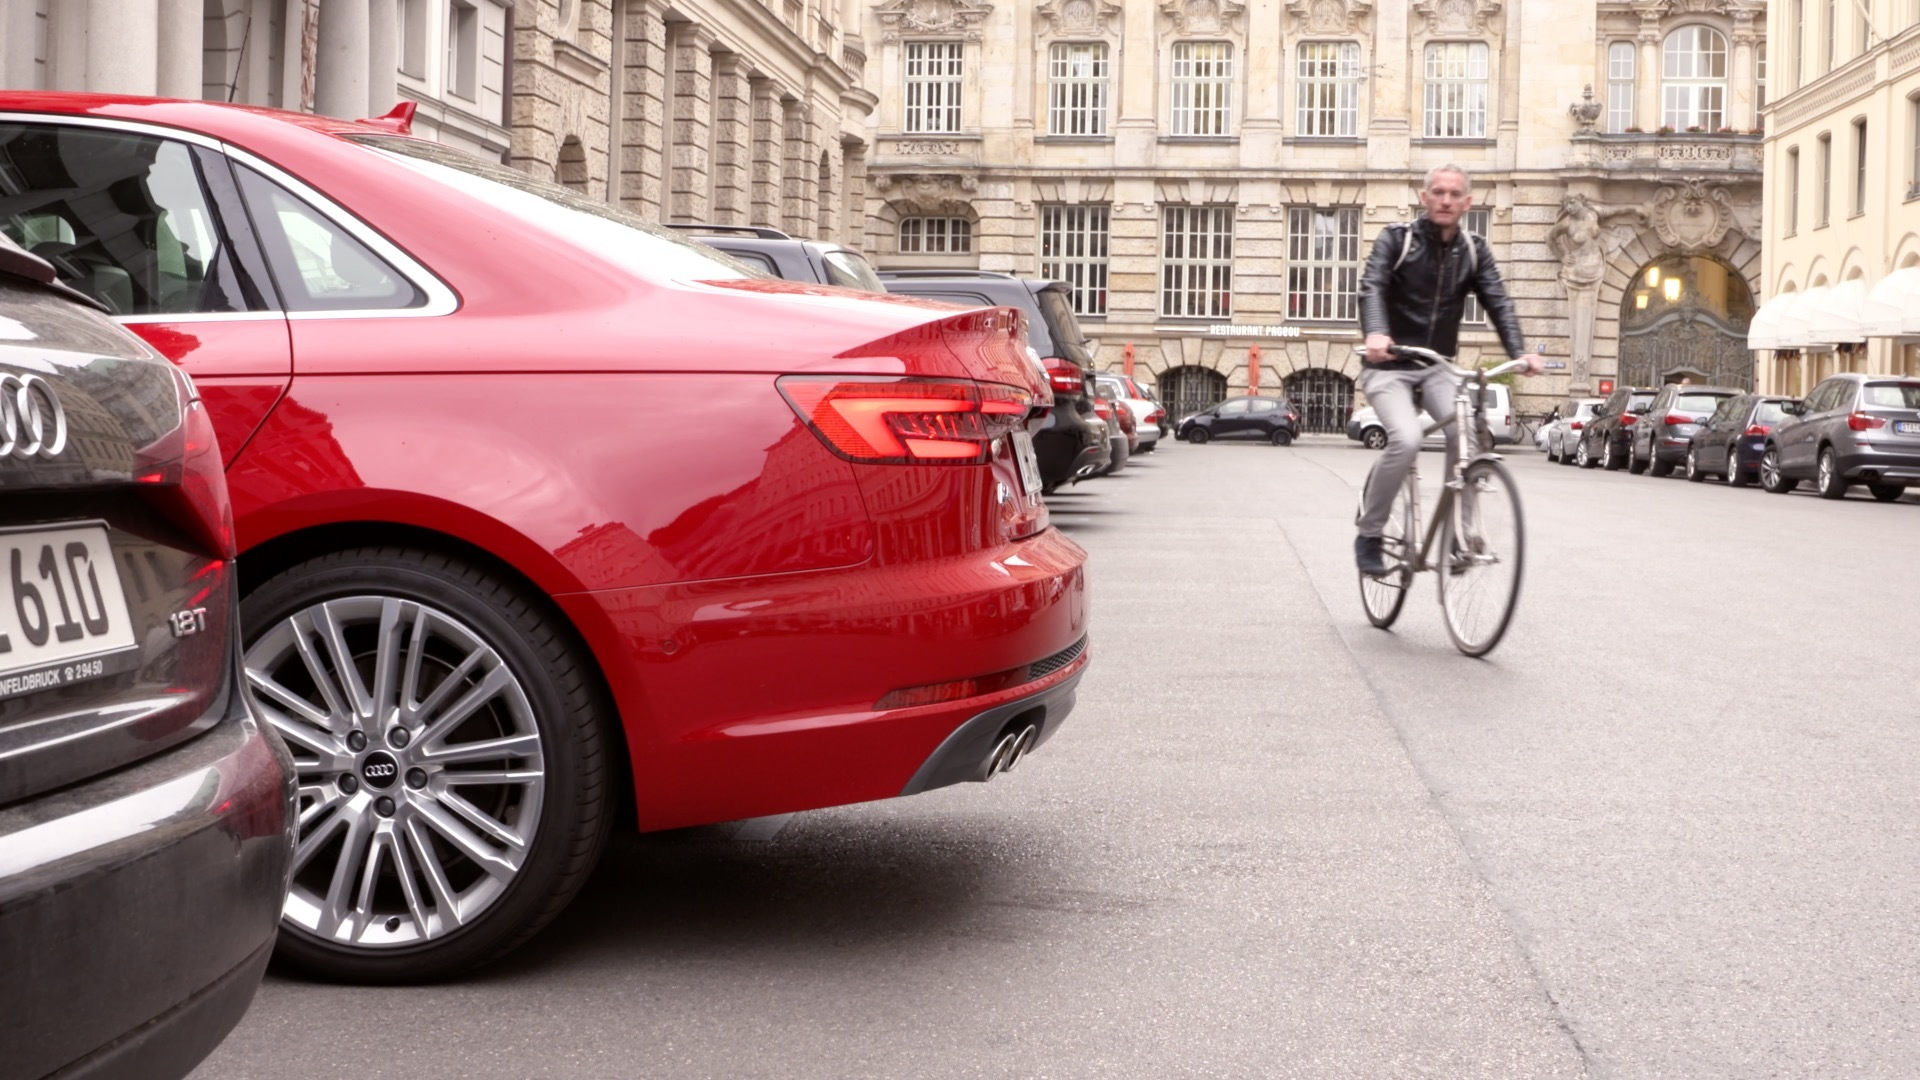 Safely through the city traffic: The Audi driver assistance systems, episode 1